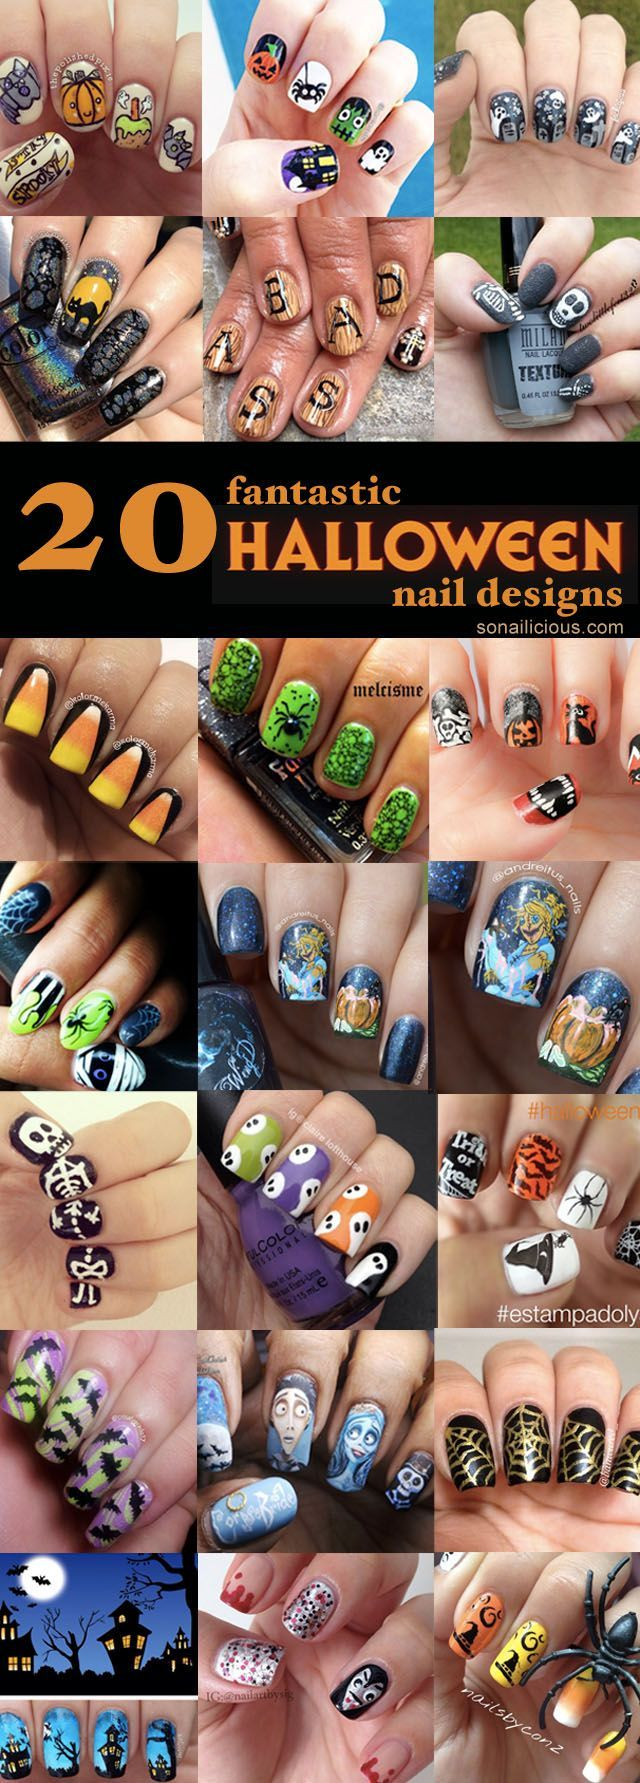 the 20 halloween nail designs presented today are done by sonailicious readers from cute halloween nails to scary all great nail designs in one place - Easy Cute Halloween Nail Designs